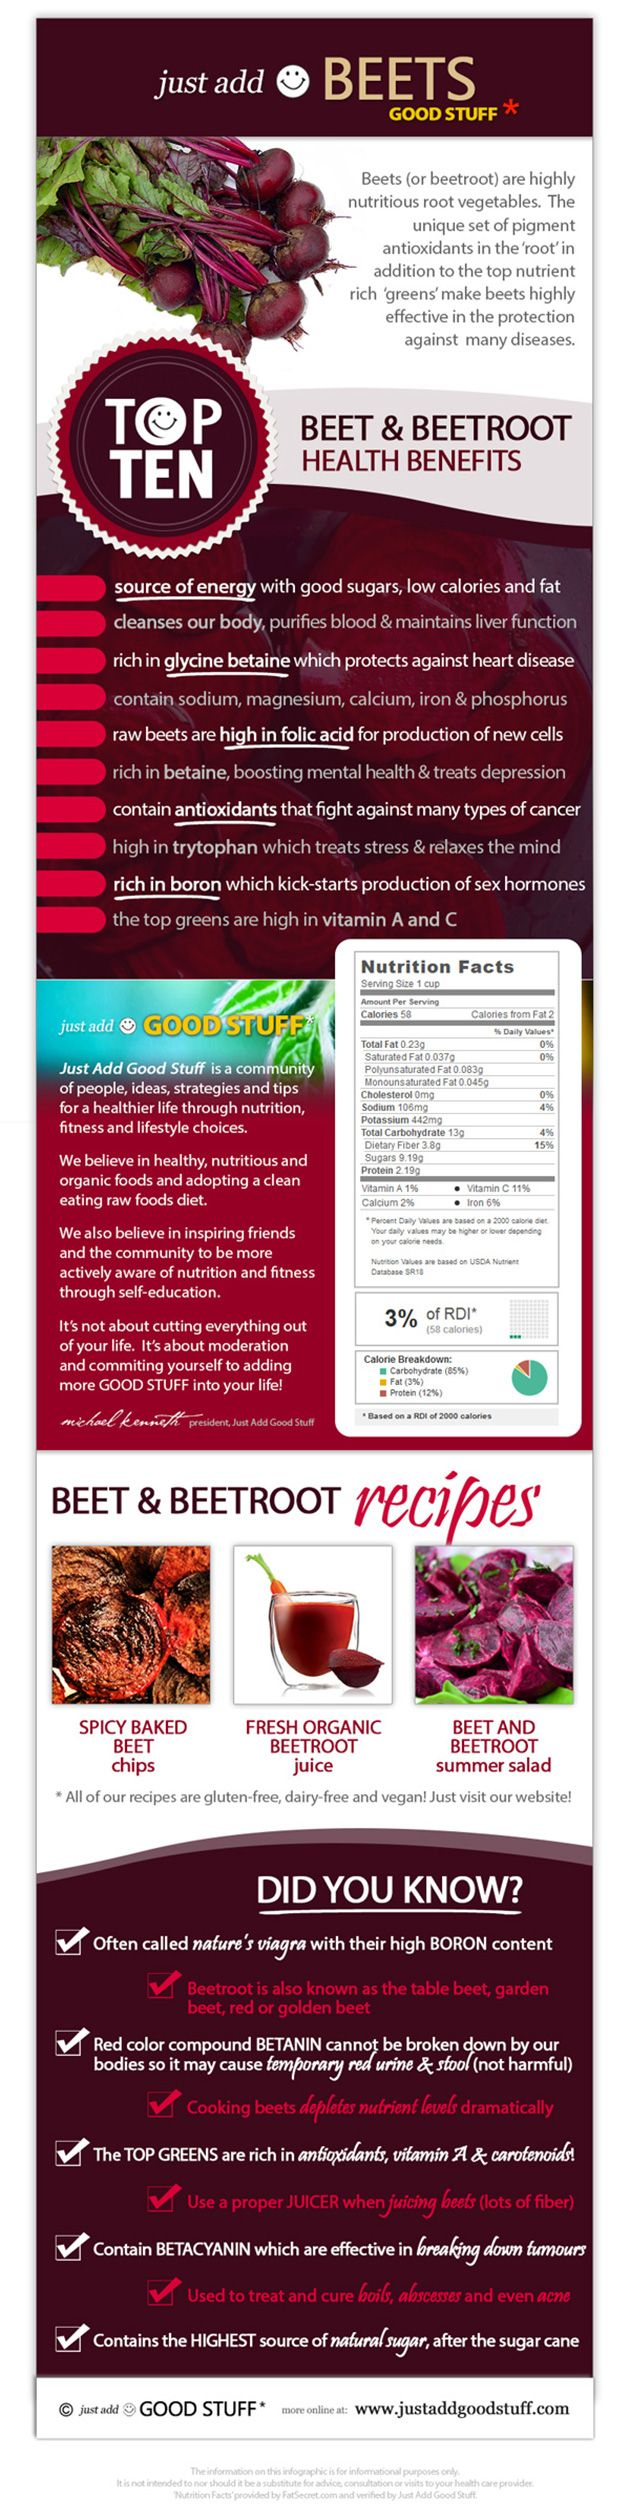 Health Benefits Of Beetroot Infographic